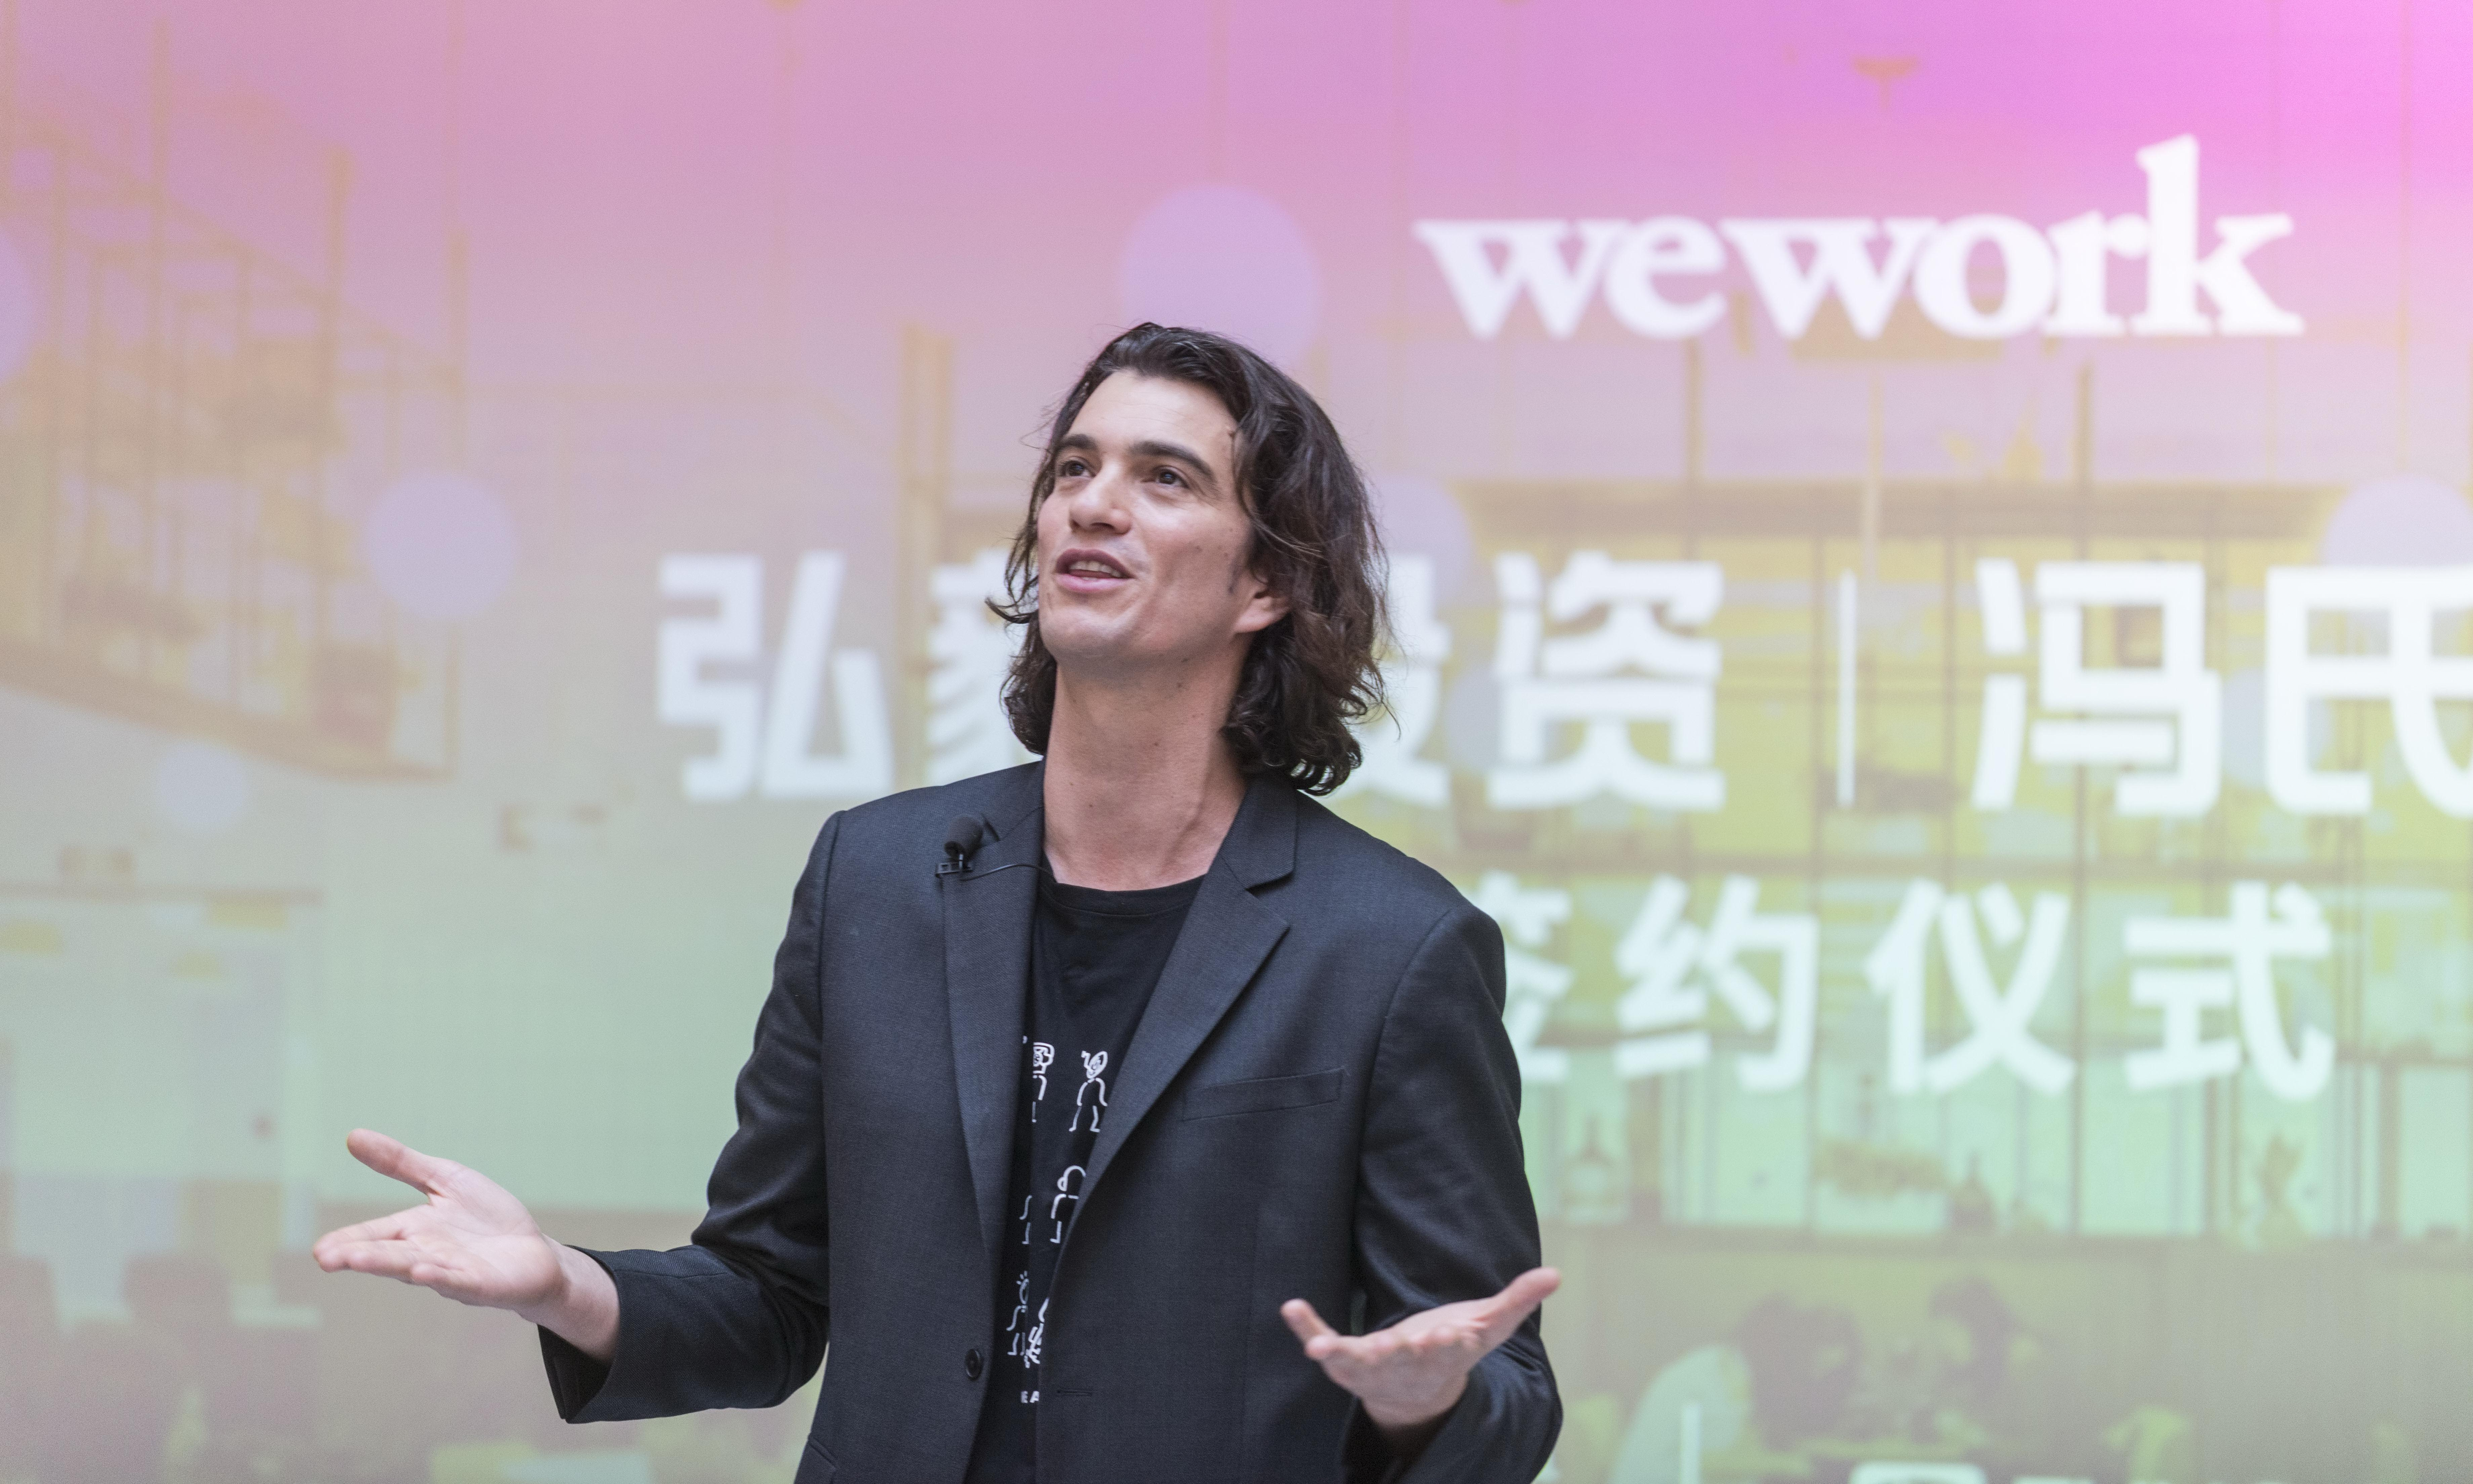 Hubris of a high-flyer: how investors brought WeWork founder down to earth